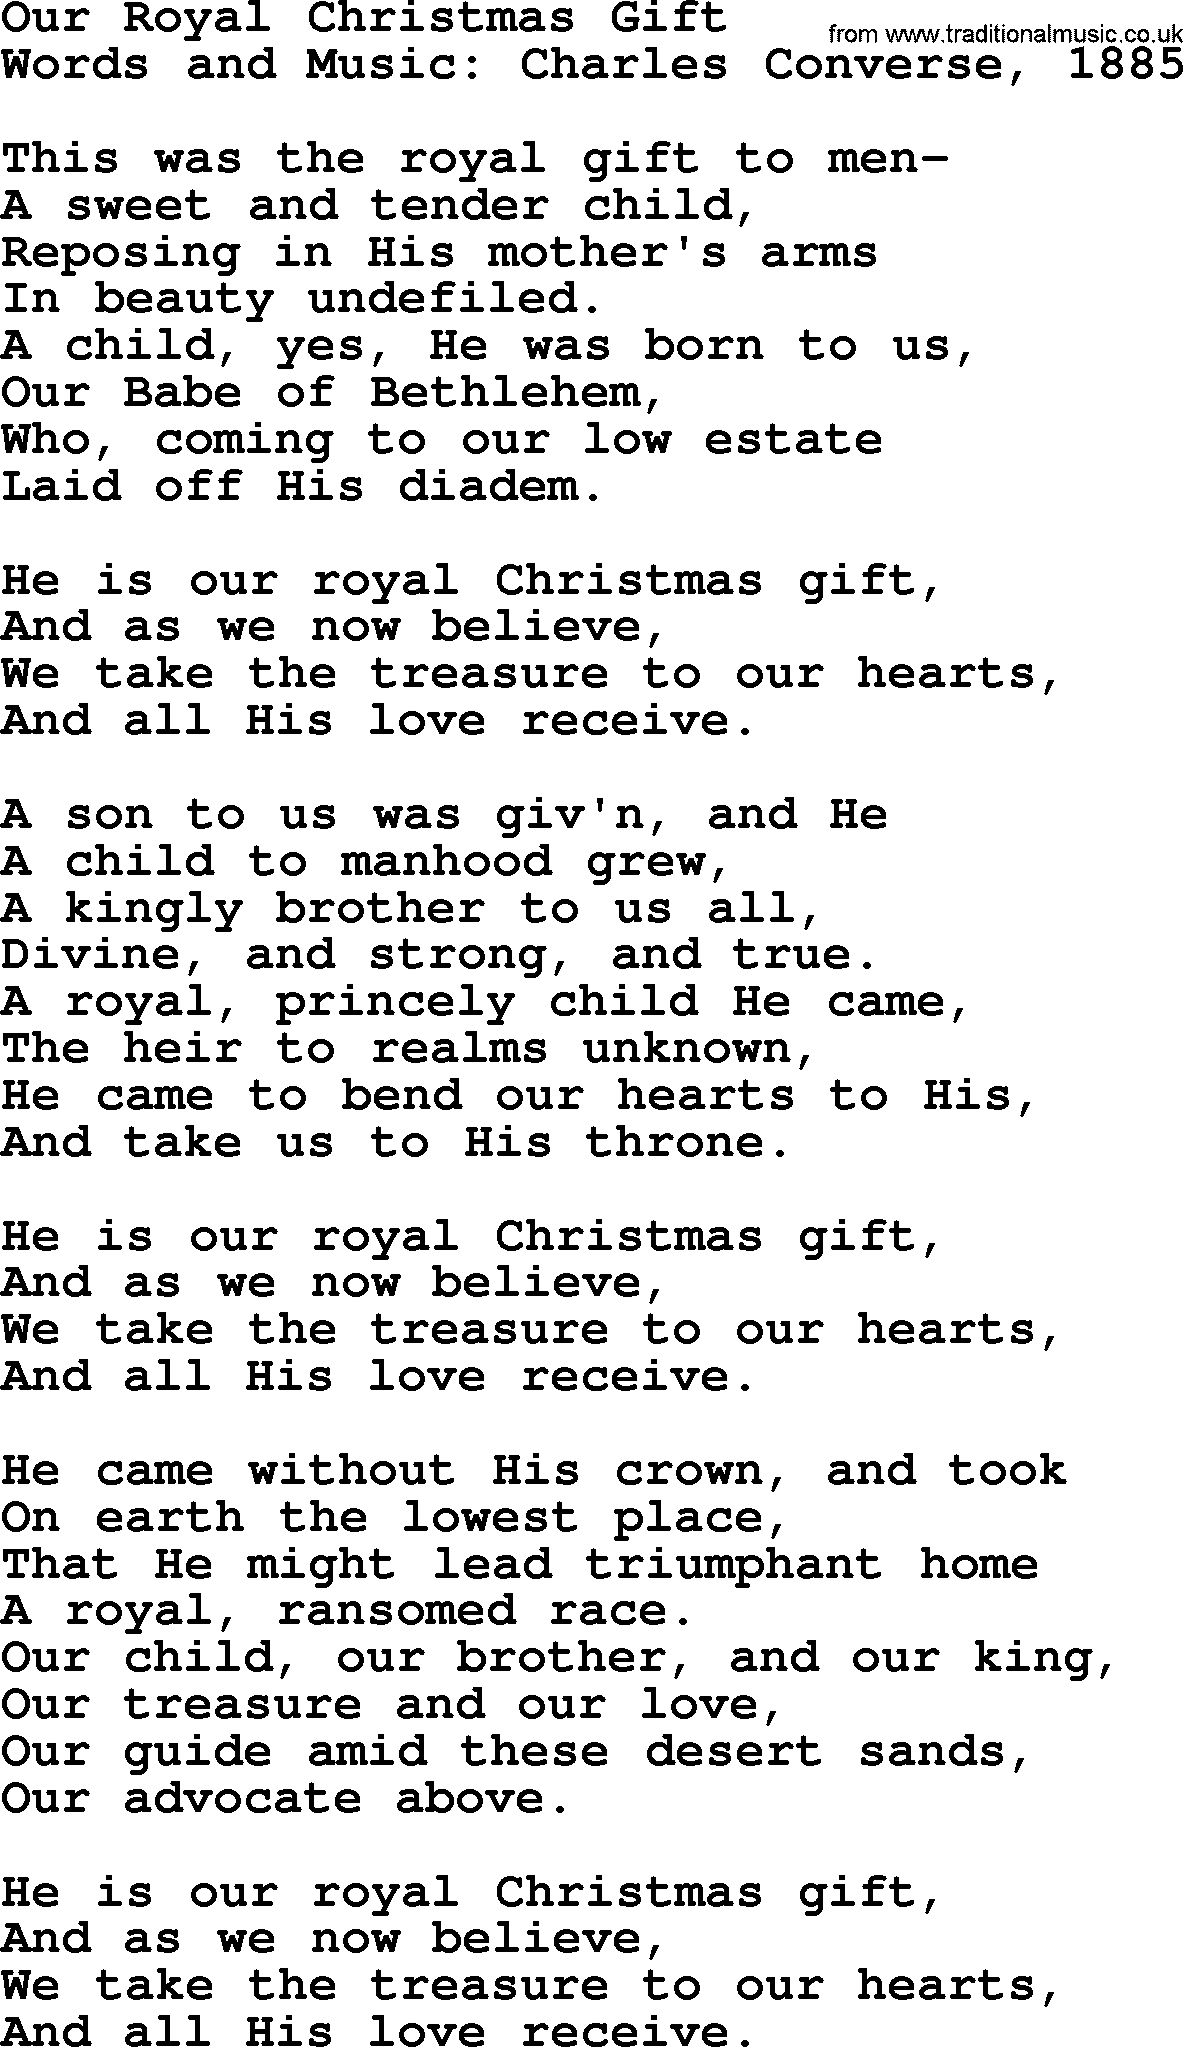 Christmas Powerpoints, Song: Our Royal Christmas Gift - Lyrics, PPT ...